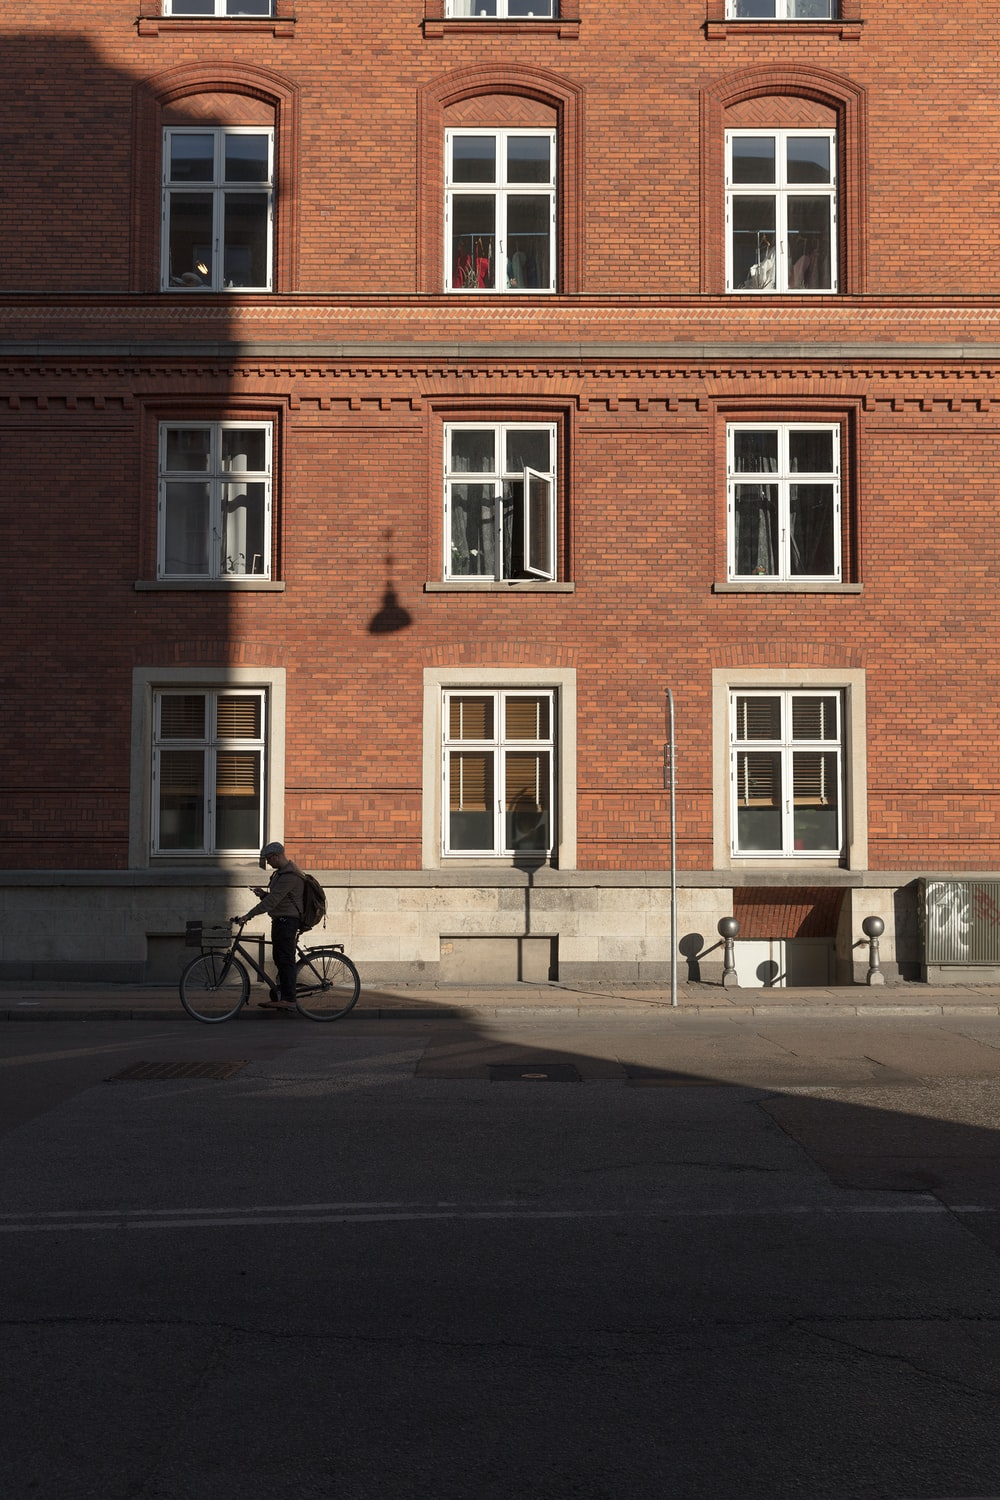 person riding road bike beside brown brick building during daytime